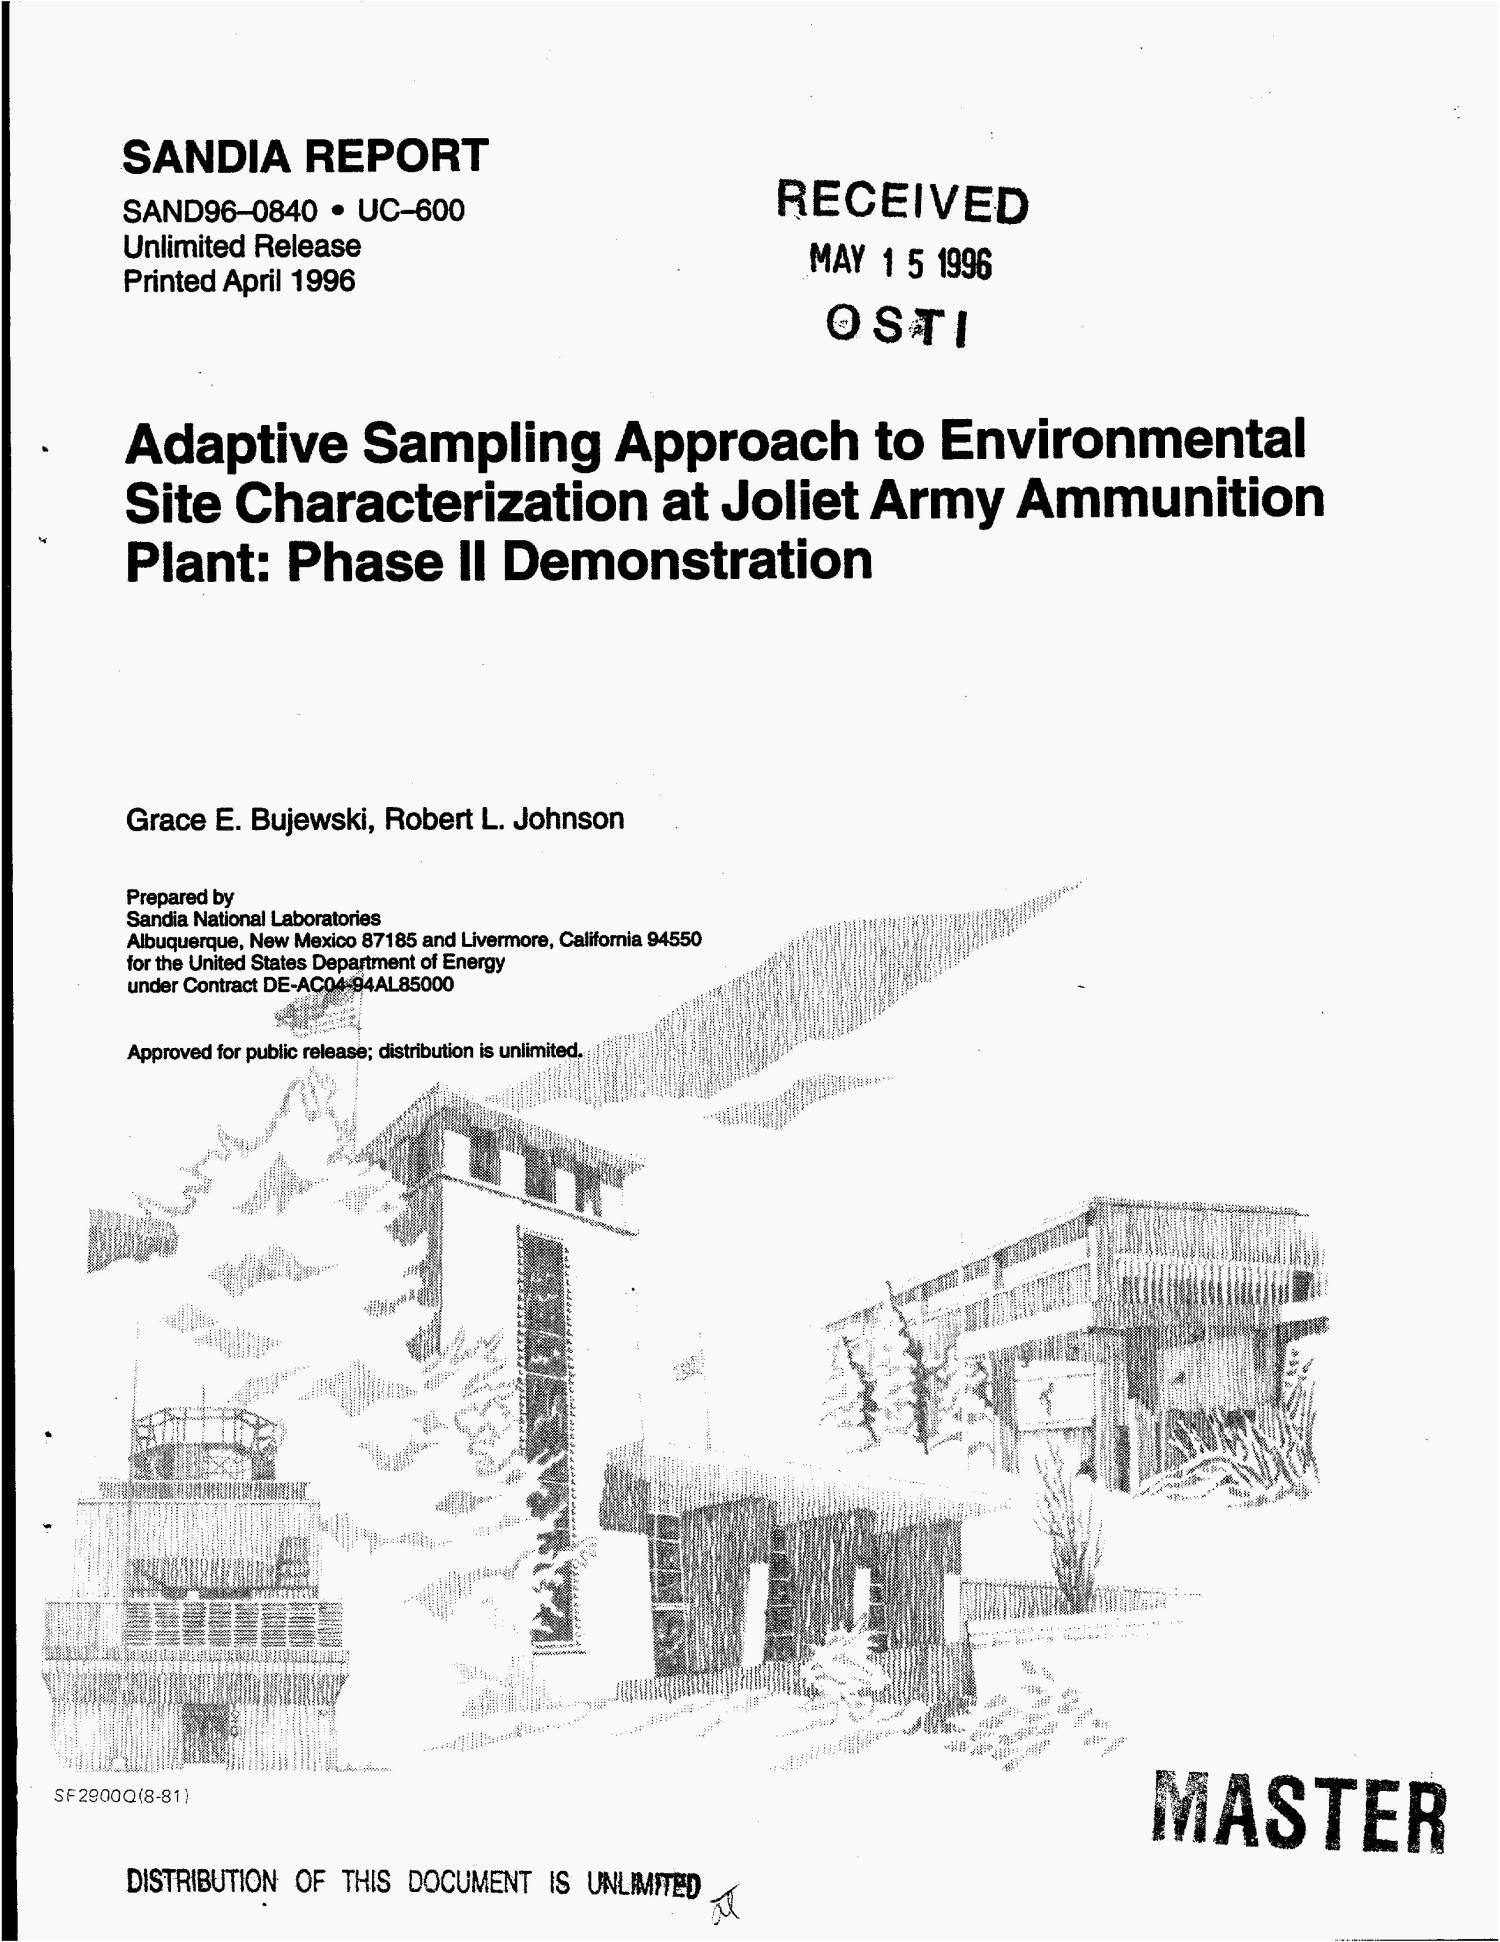 Adaptive Sampling approach to environmental site characterization at Joliet Army Ammunition Plant: Phase 2 demonstration                                                                                                      [Sequence #]: 1 of 35